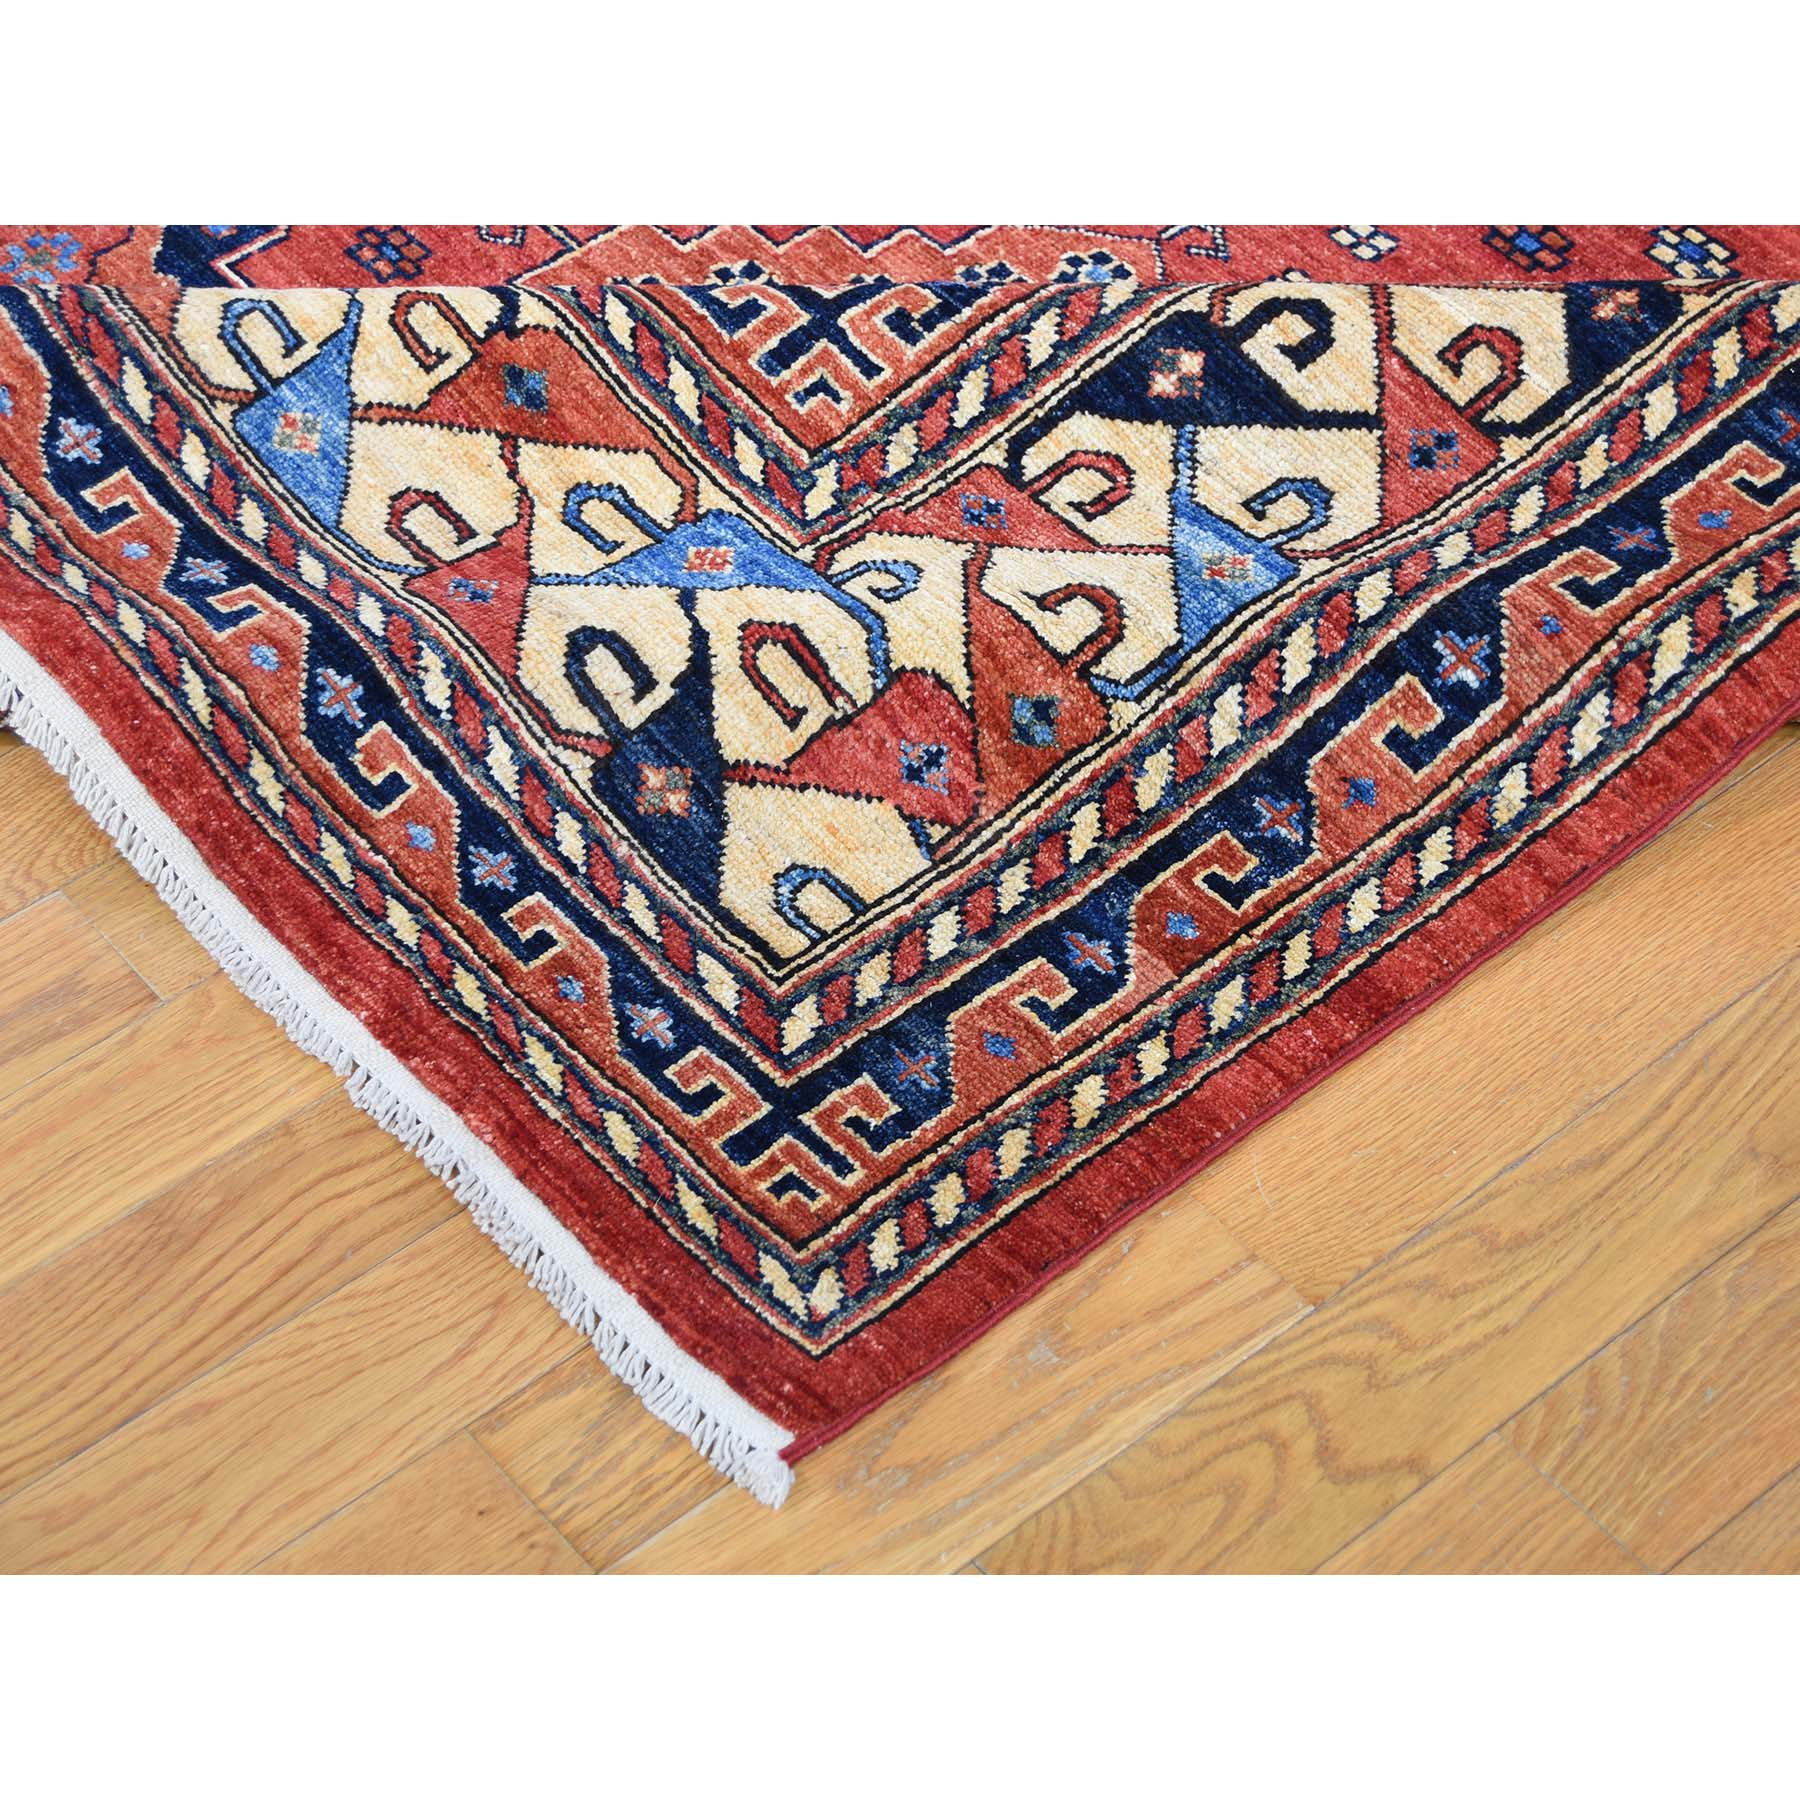 10-x14- Afghan Ersari Geometric All Over Design Pure Wool Hand-knotted Oriental Rug